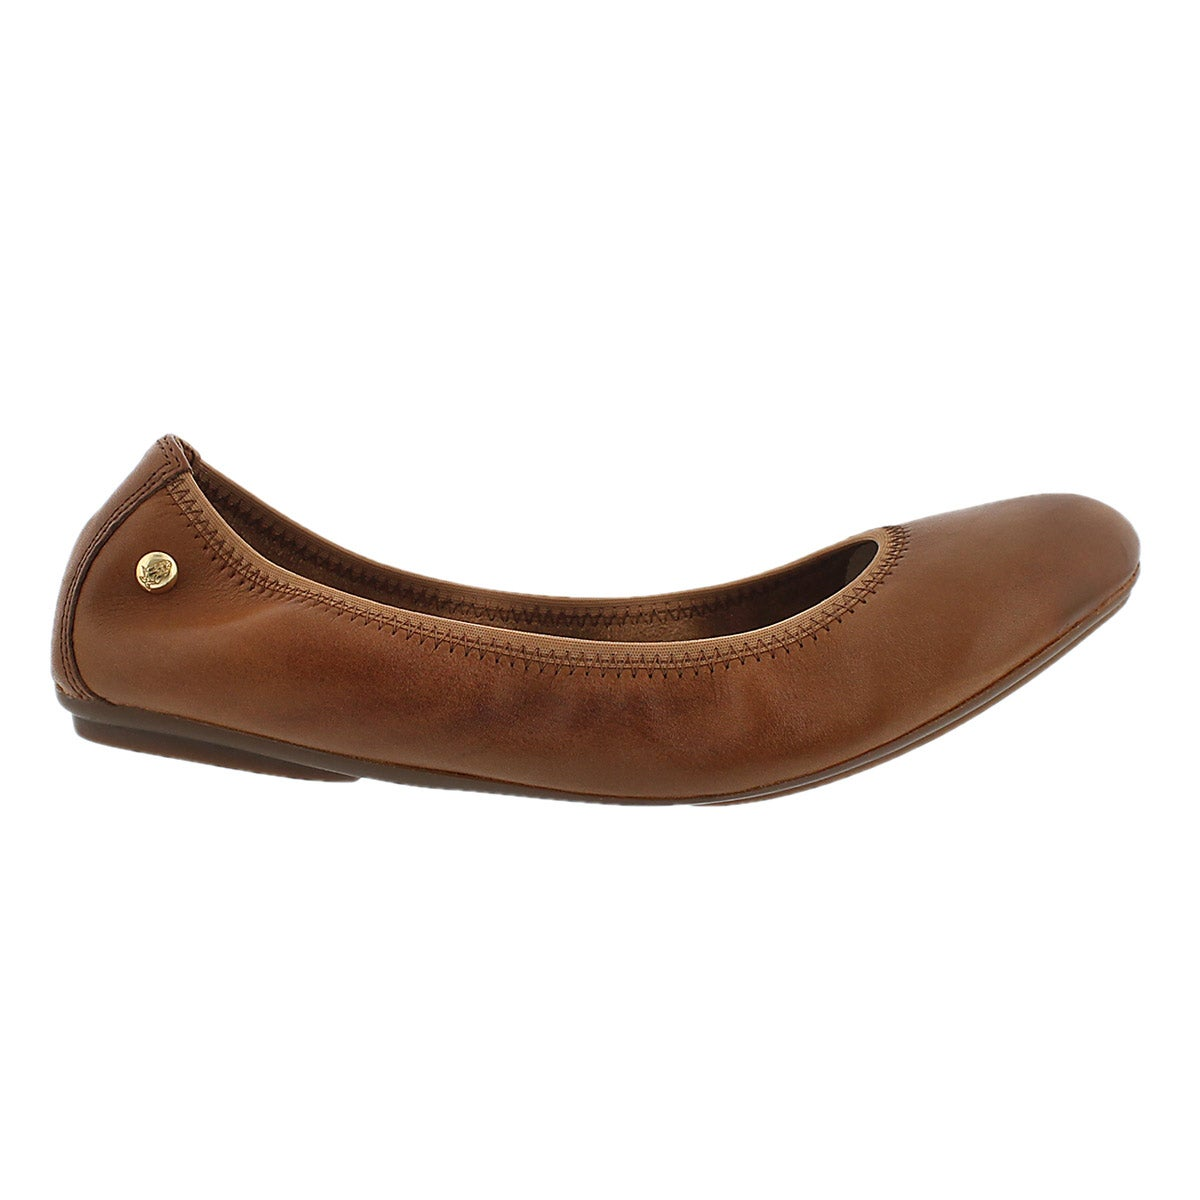 Lds Chaste Ballet cognac leather flat